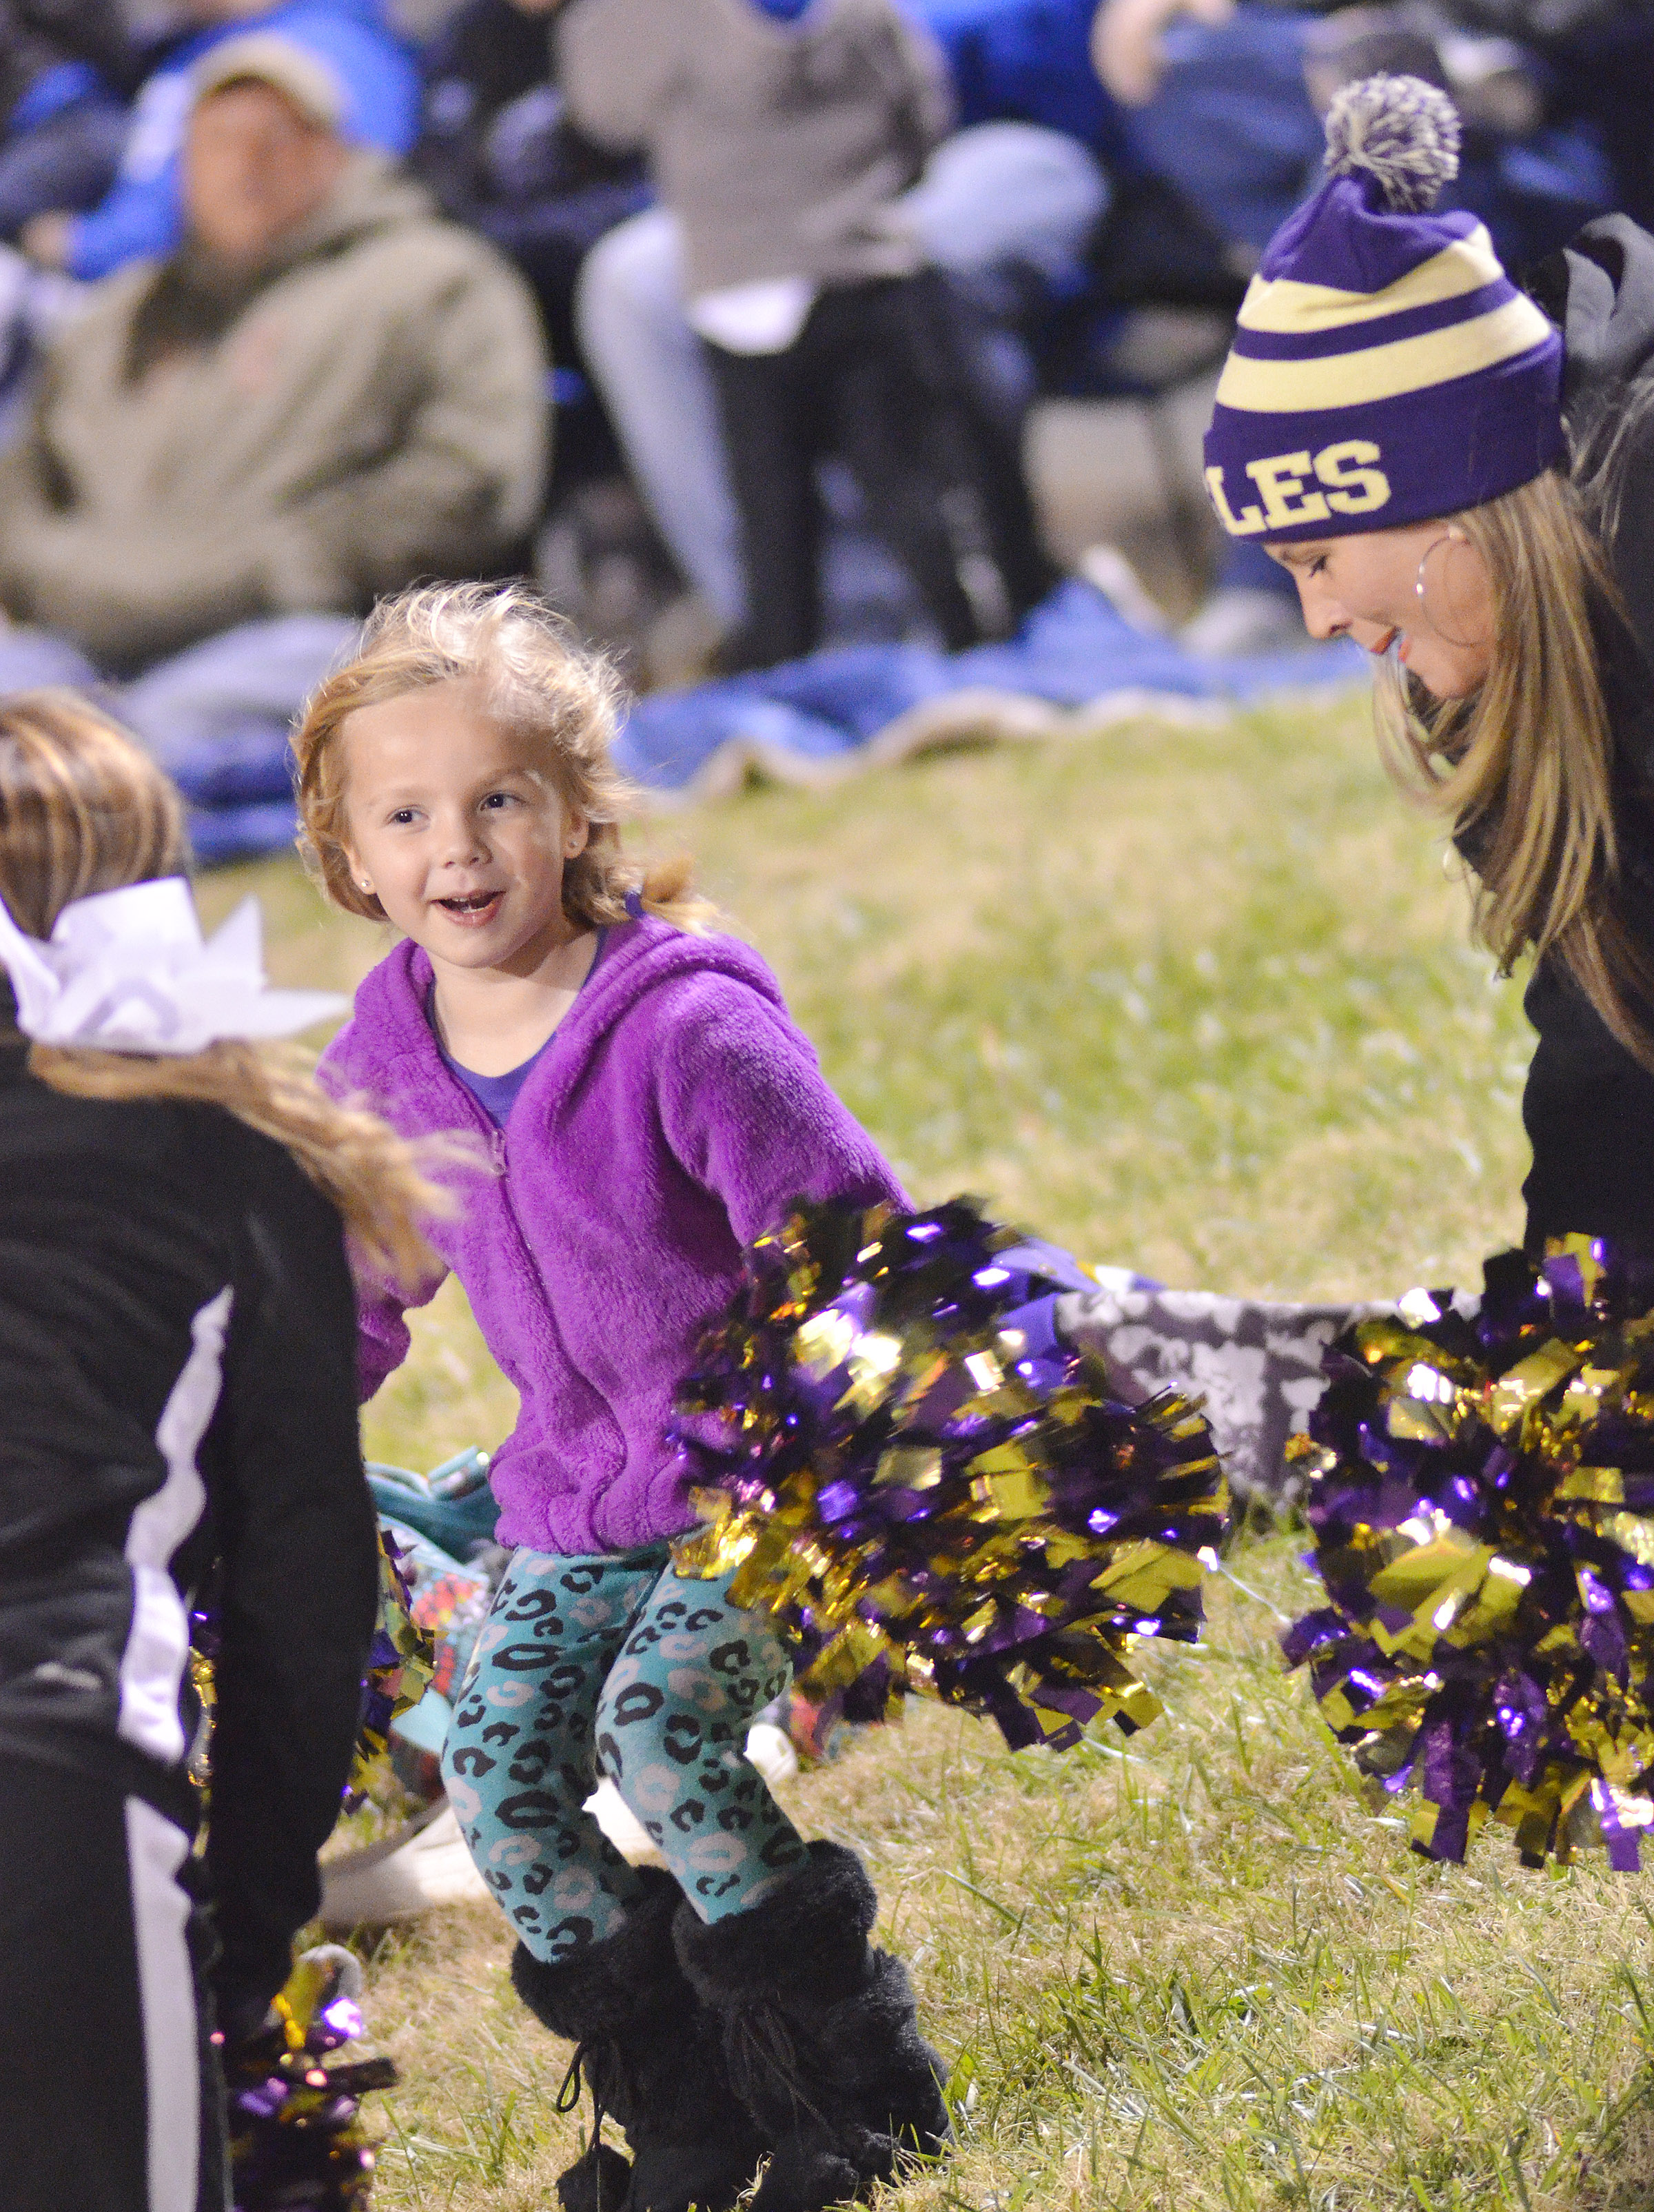 Campbellsville Elementary School kindergartener Trinidy Gribbins and her mother, Andrea, a teacher at Campbellsville Middle School, cheer with the CHS cheerleaders.